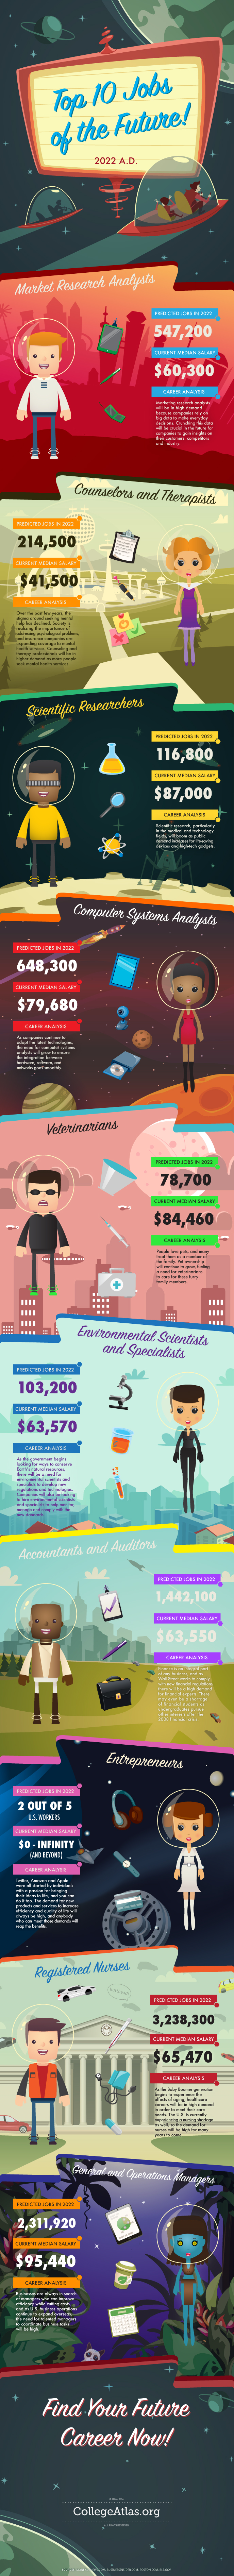 CollegeAtlas.org infographic detailing top jobs of the future